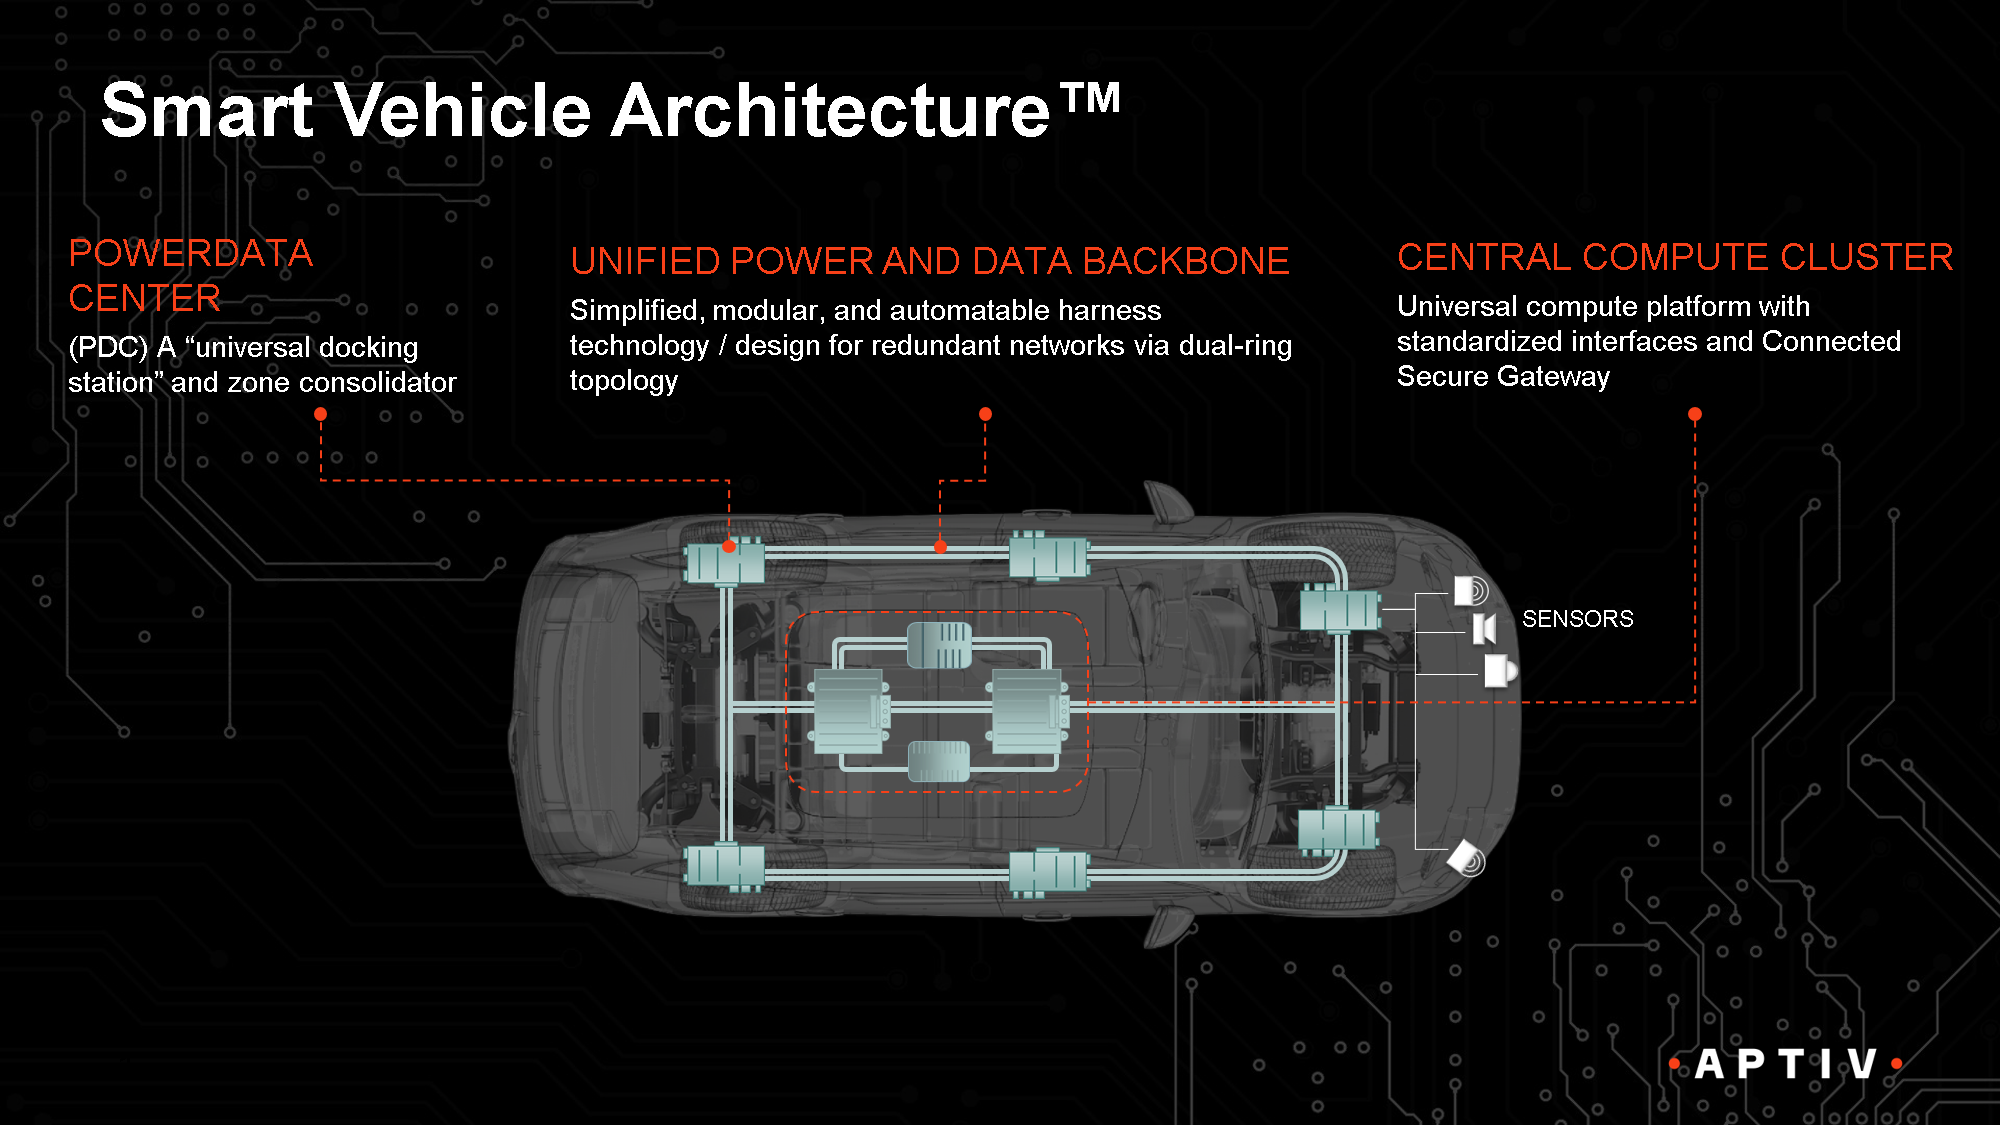 Smart Vehicle Architecture: Making the Future of Mobility Work